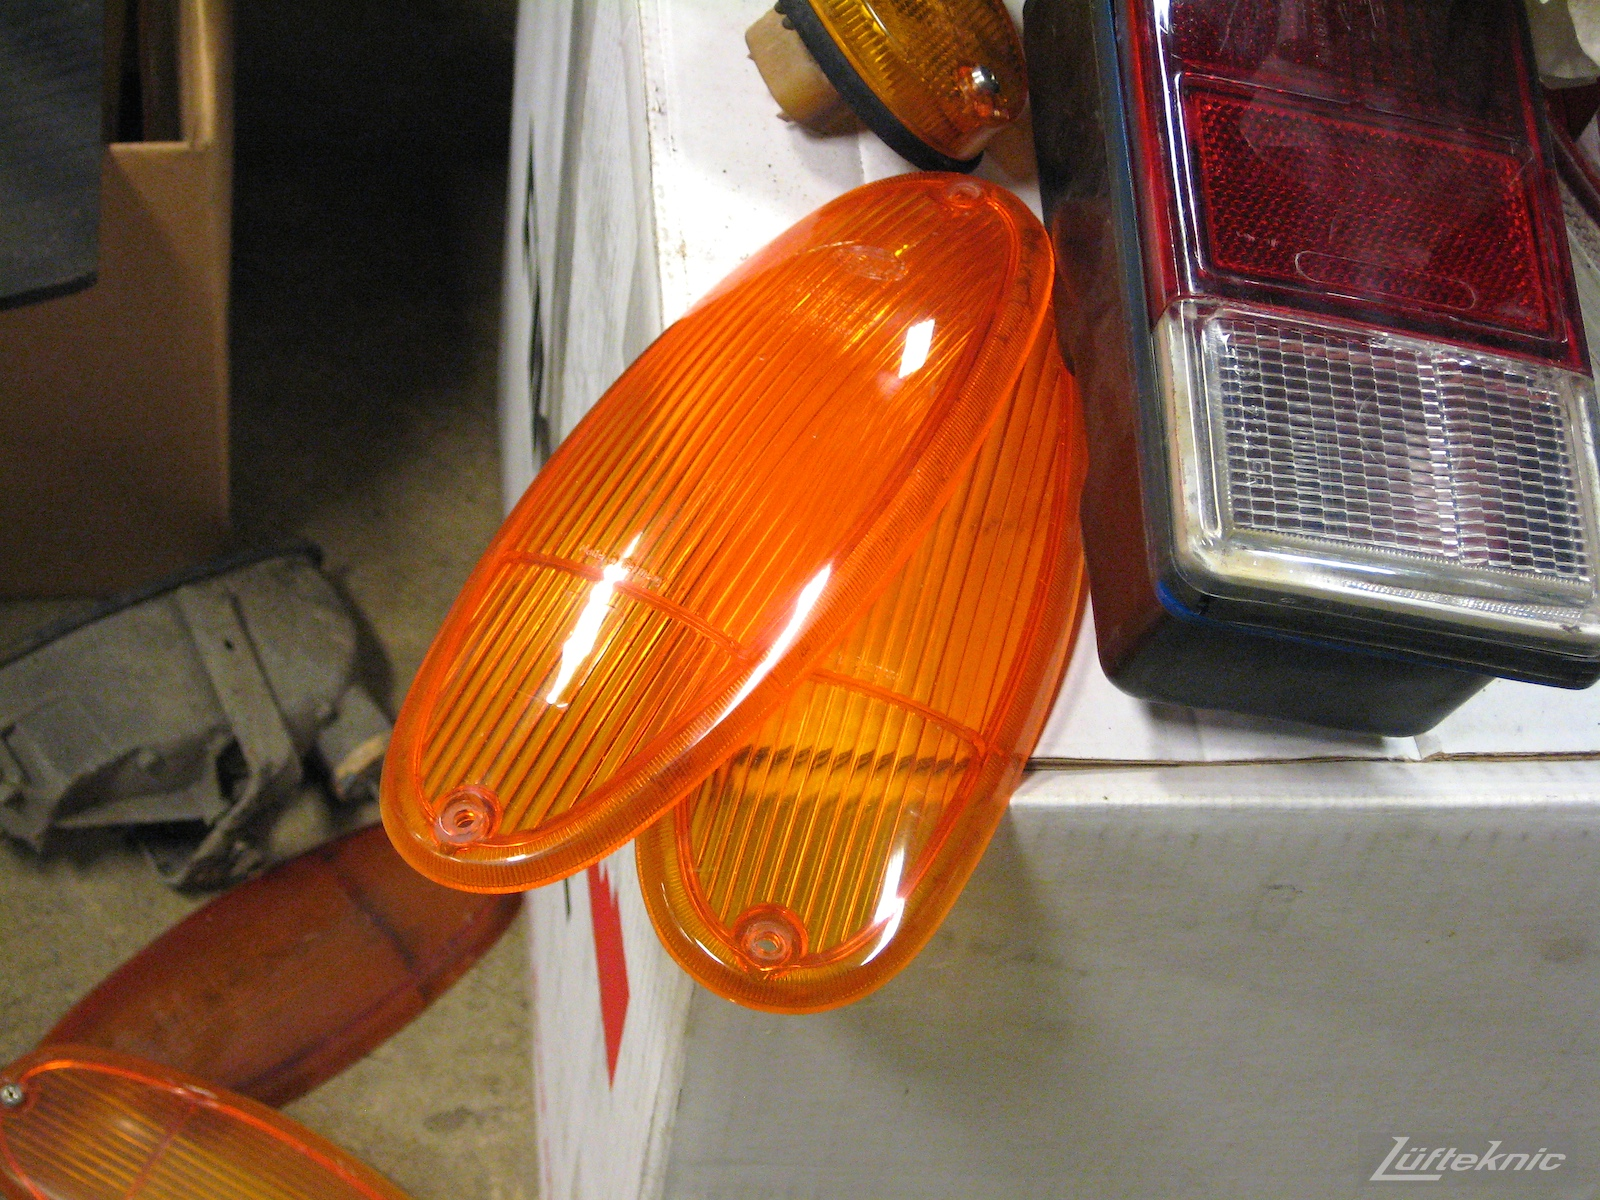 Detailed picture of fresh 914 lights prior to install on a car being restored by Lufteknic.